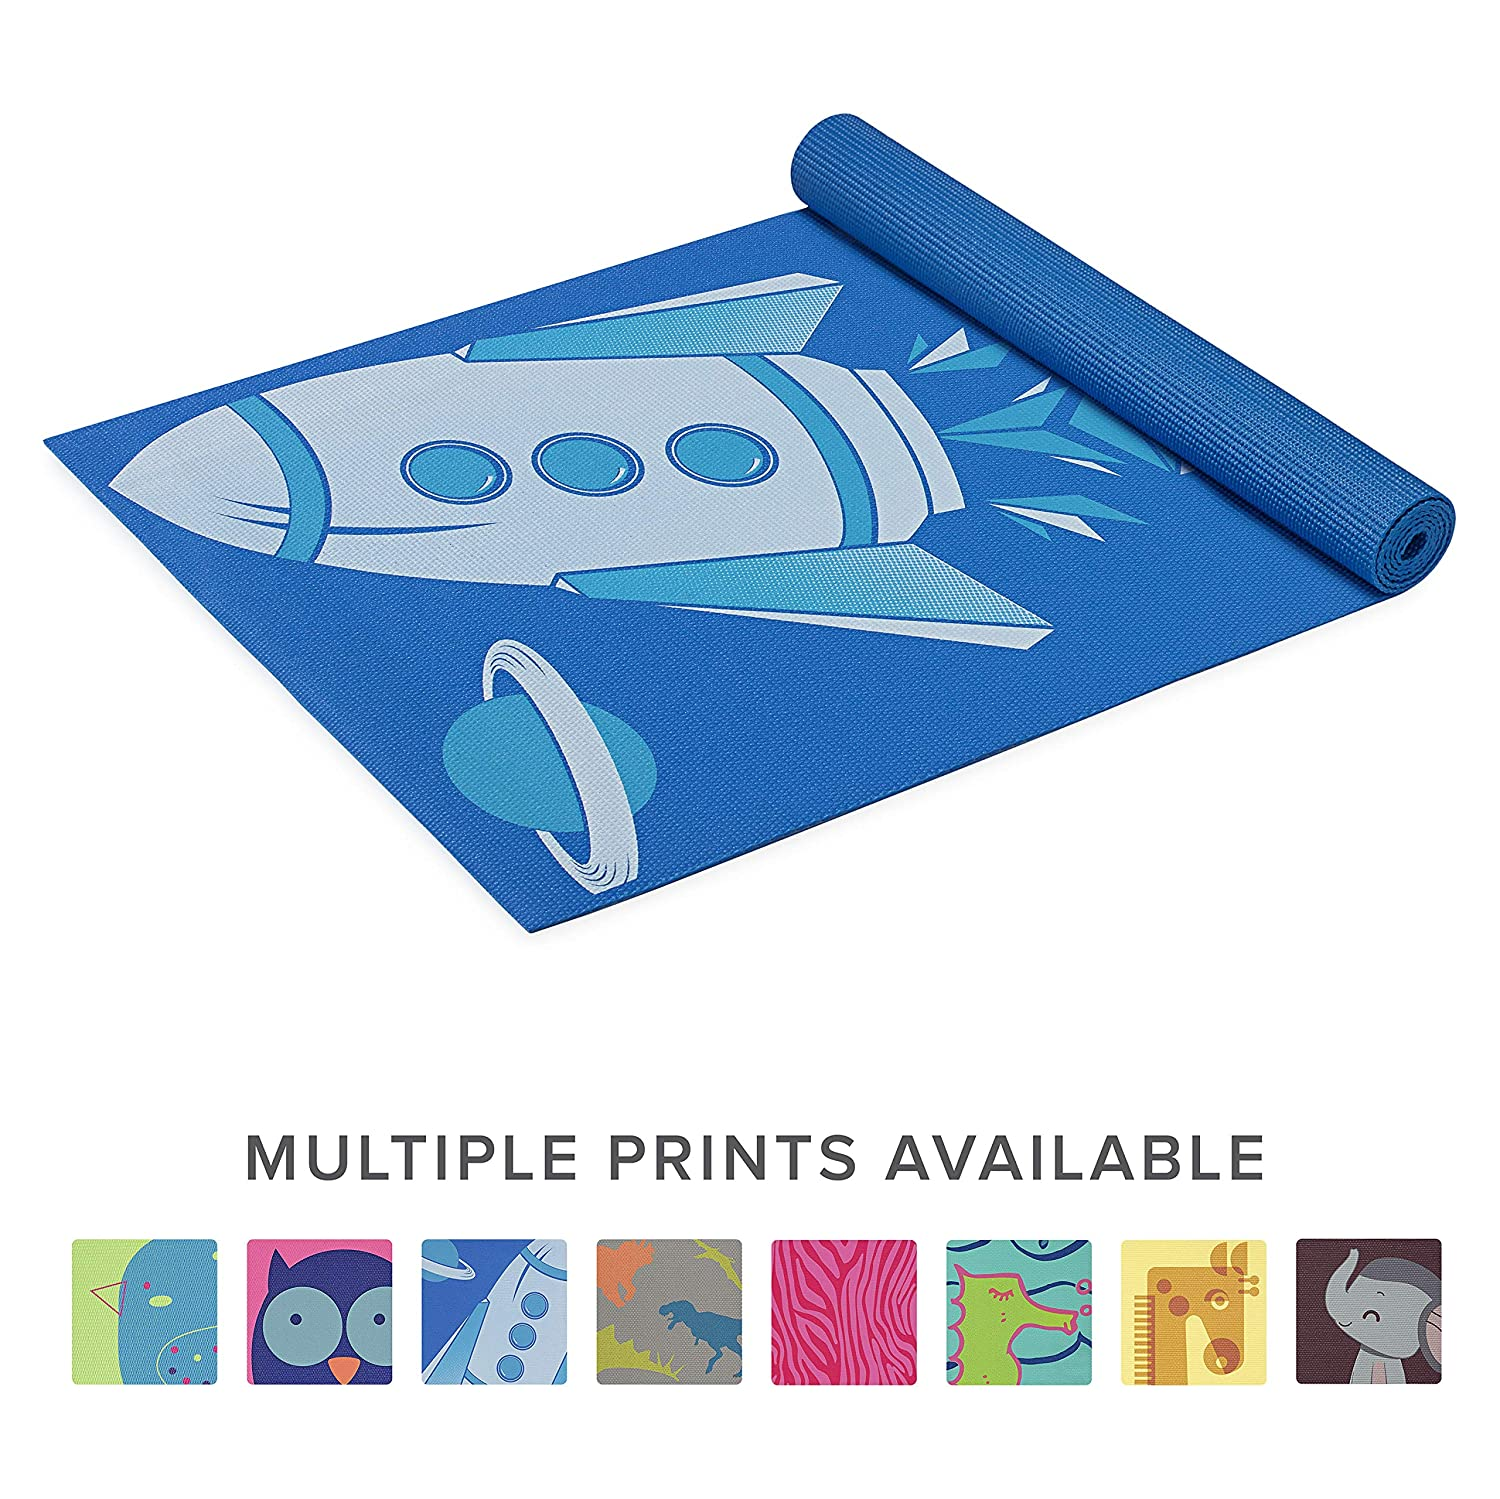 Gaiam Kids Yoga Mat Exercise Mat, Yoga for Kids with Fun Prints – Playtime for Babies, Active Calm Toddlers and Young Children 60 L x 24 W x 3mm Thick